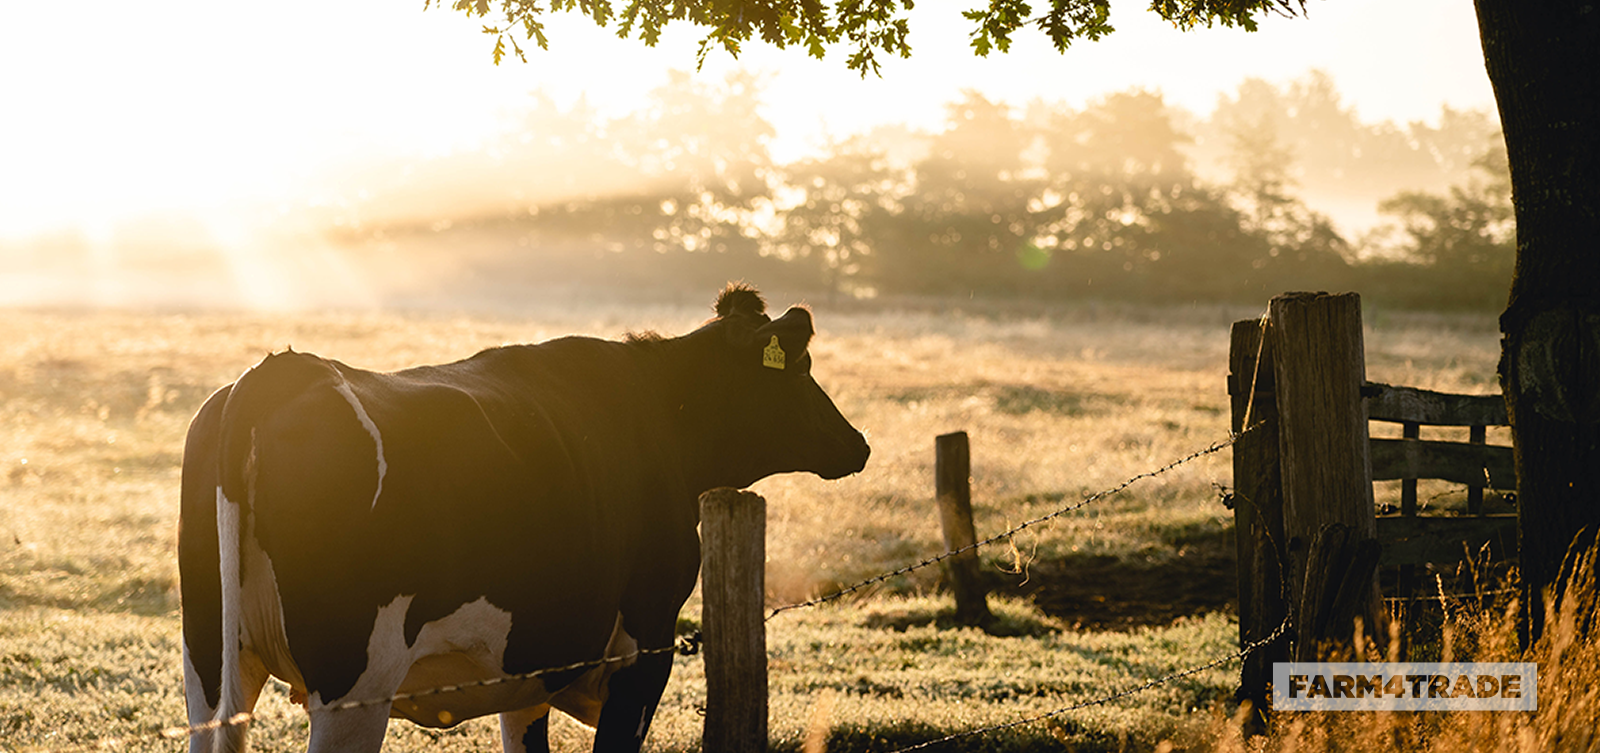 The prevalence of Mastitis in Cattle dairy herd